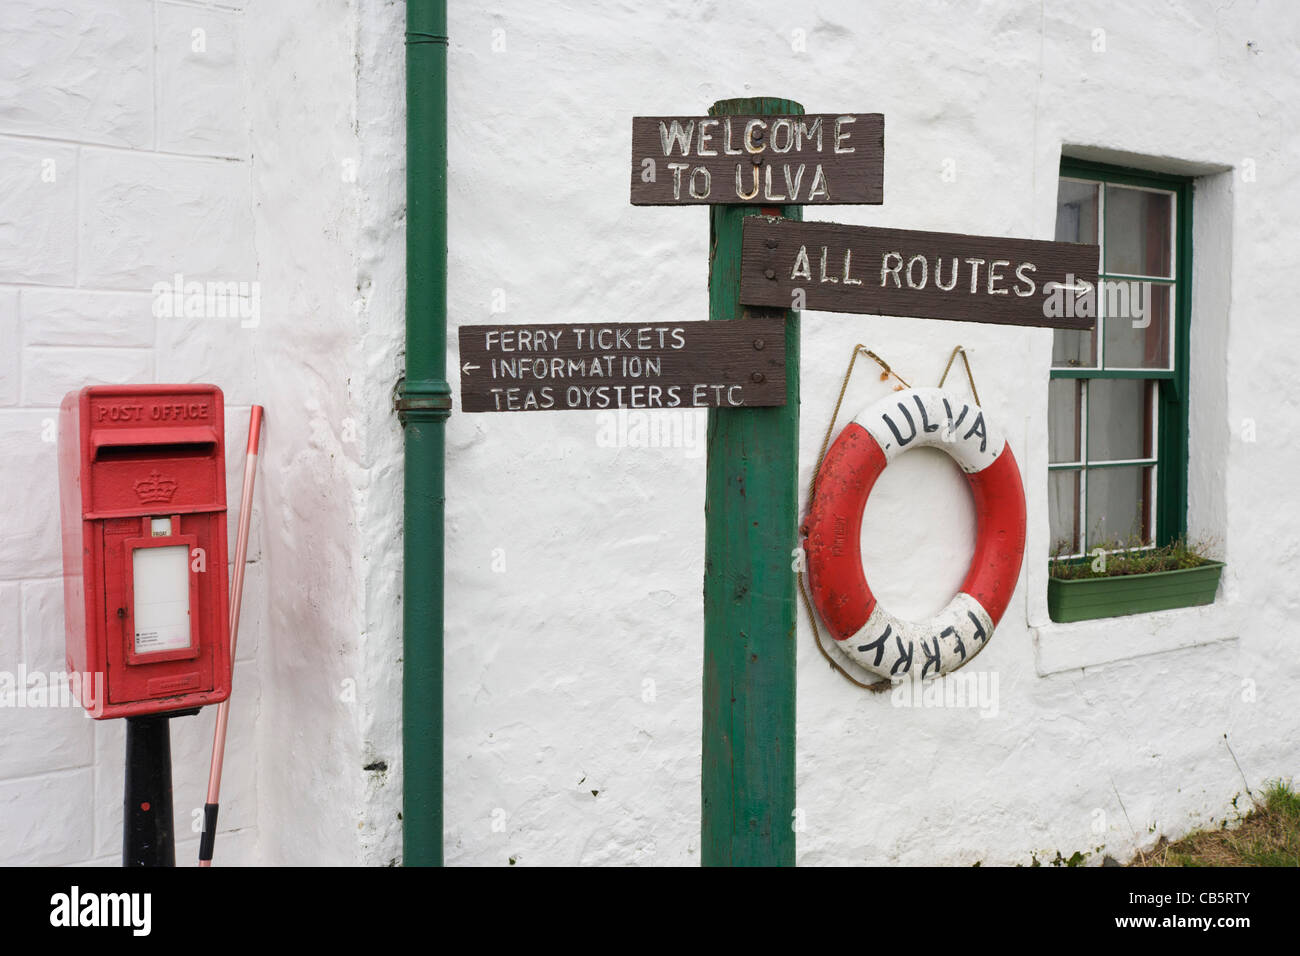 Detail of signs for walking routes around the Isle of Ulva, Isle of Mull, Scotland. - Stock Image